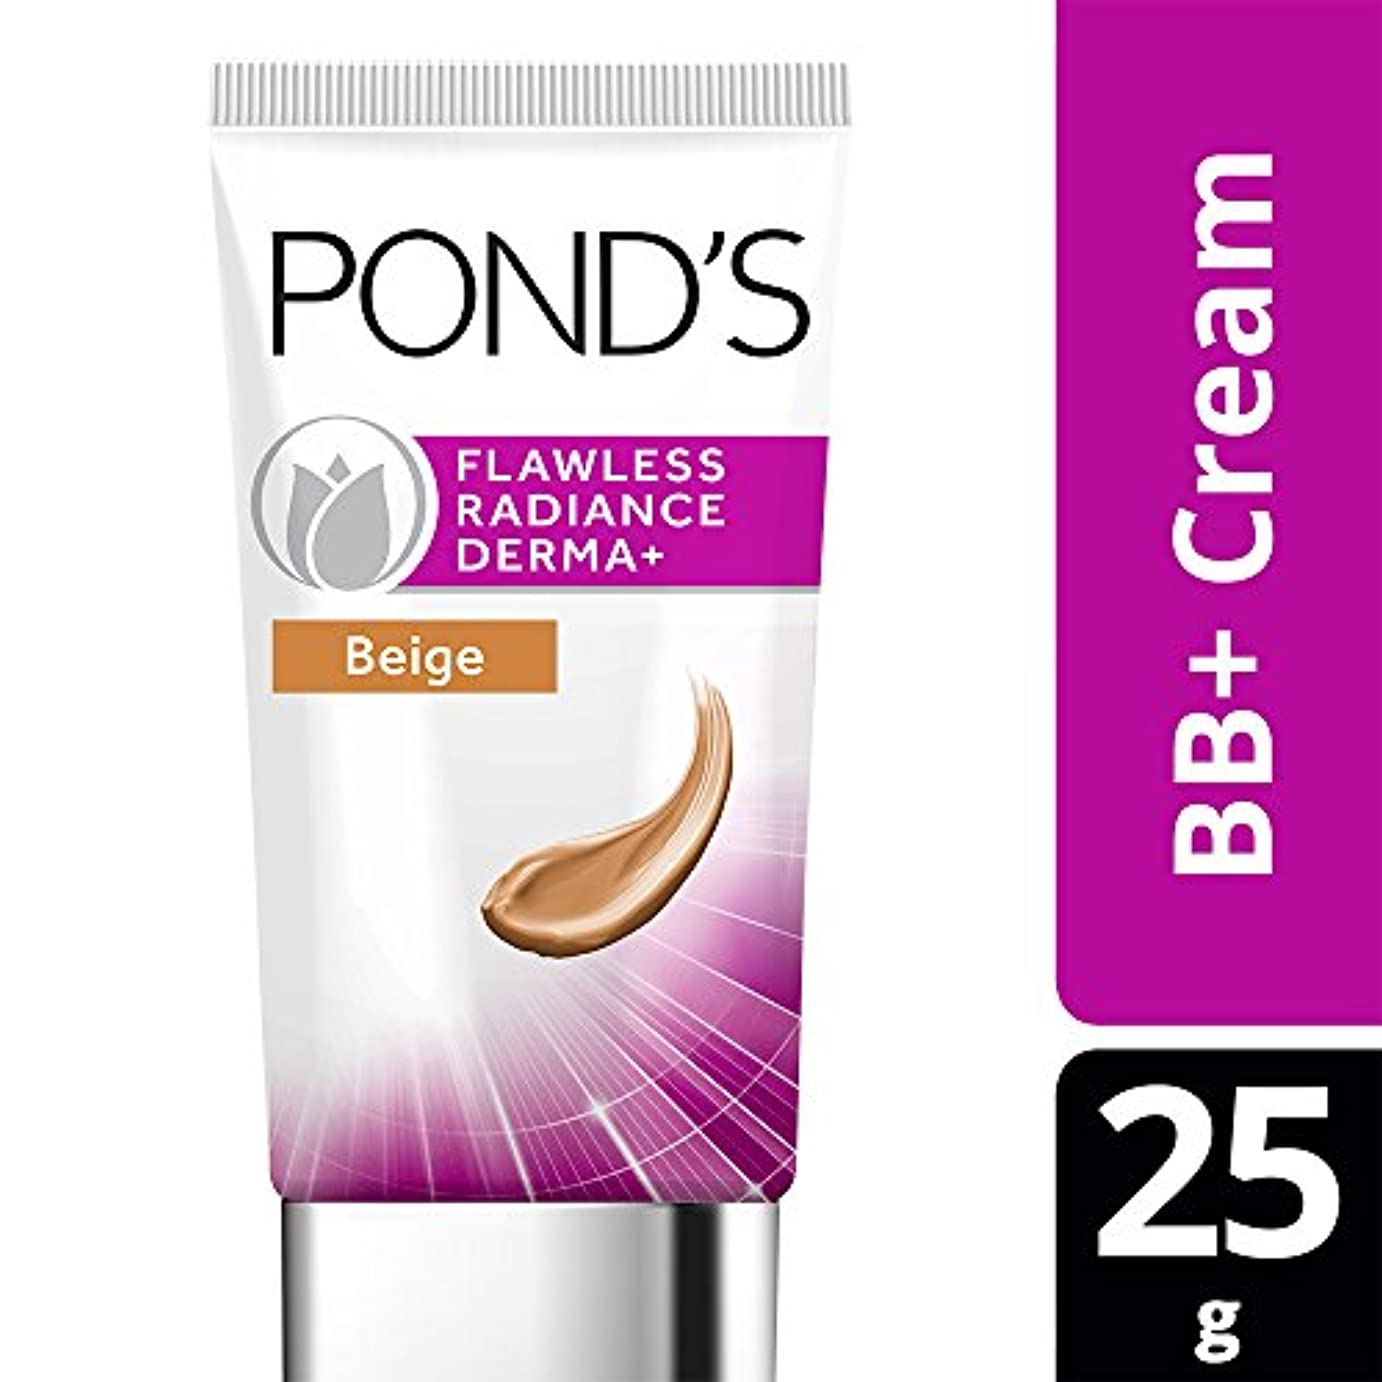 POND'S Flawless Radiance Derma+ BB Cream Beige, 25g